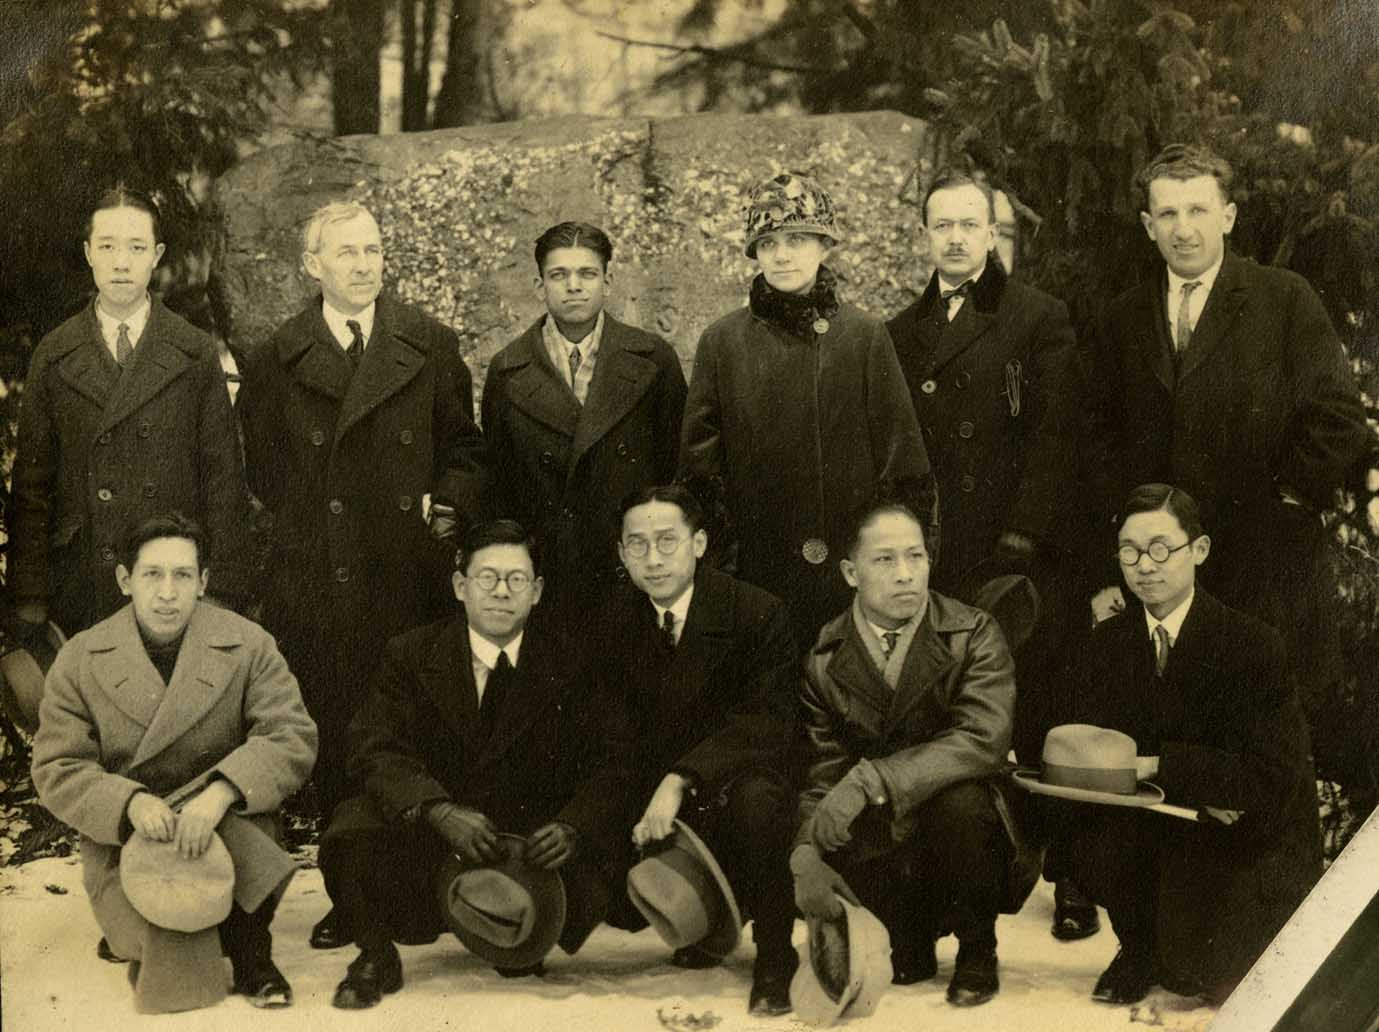 Onn Mann Liang with members of Cosmopolitan Club, 1925